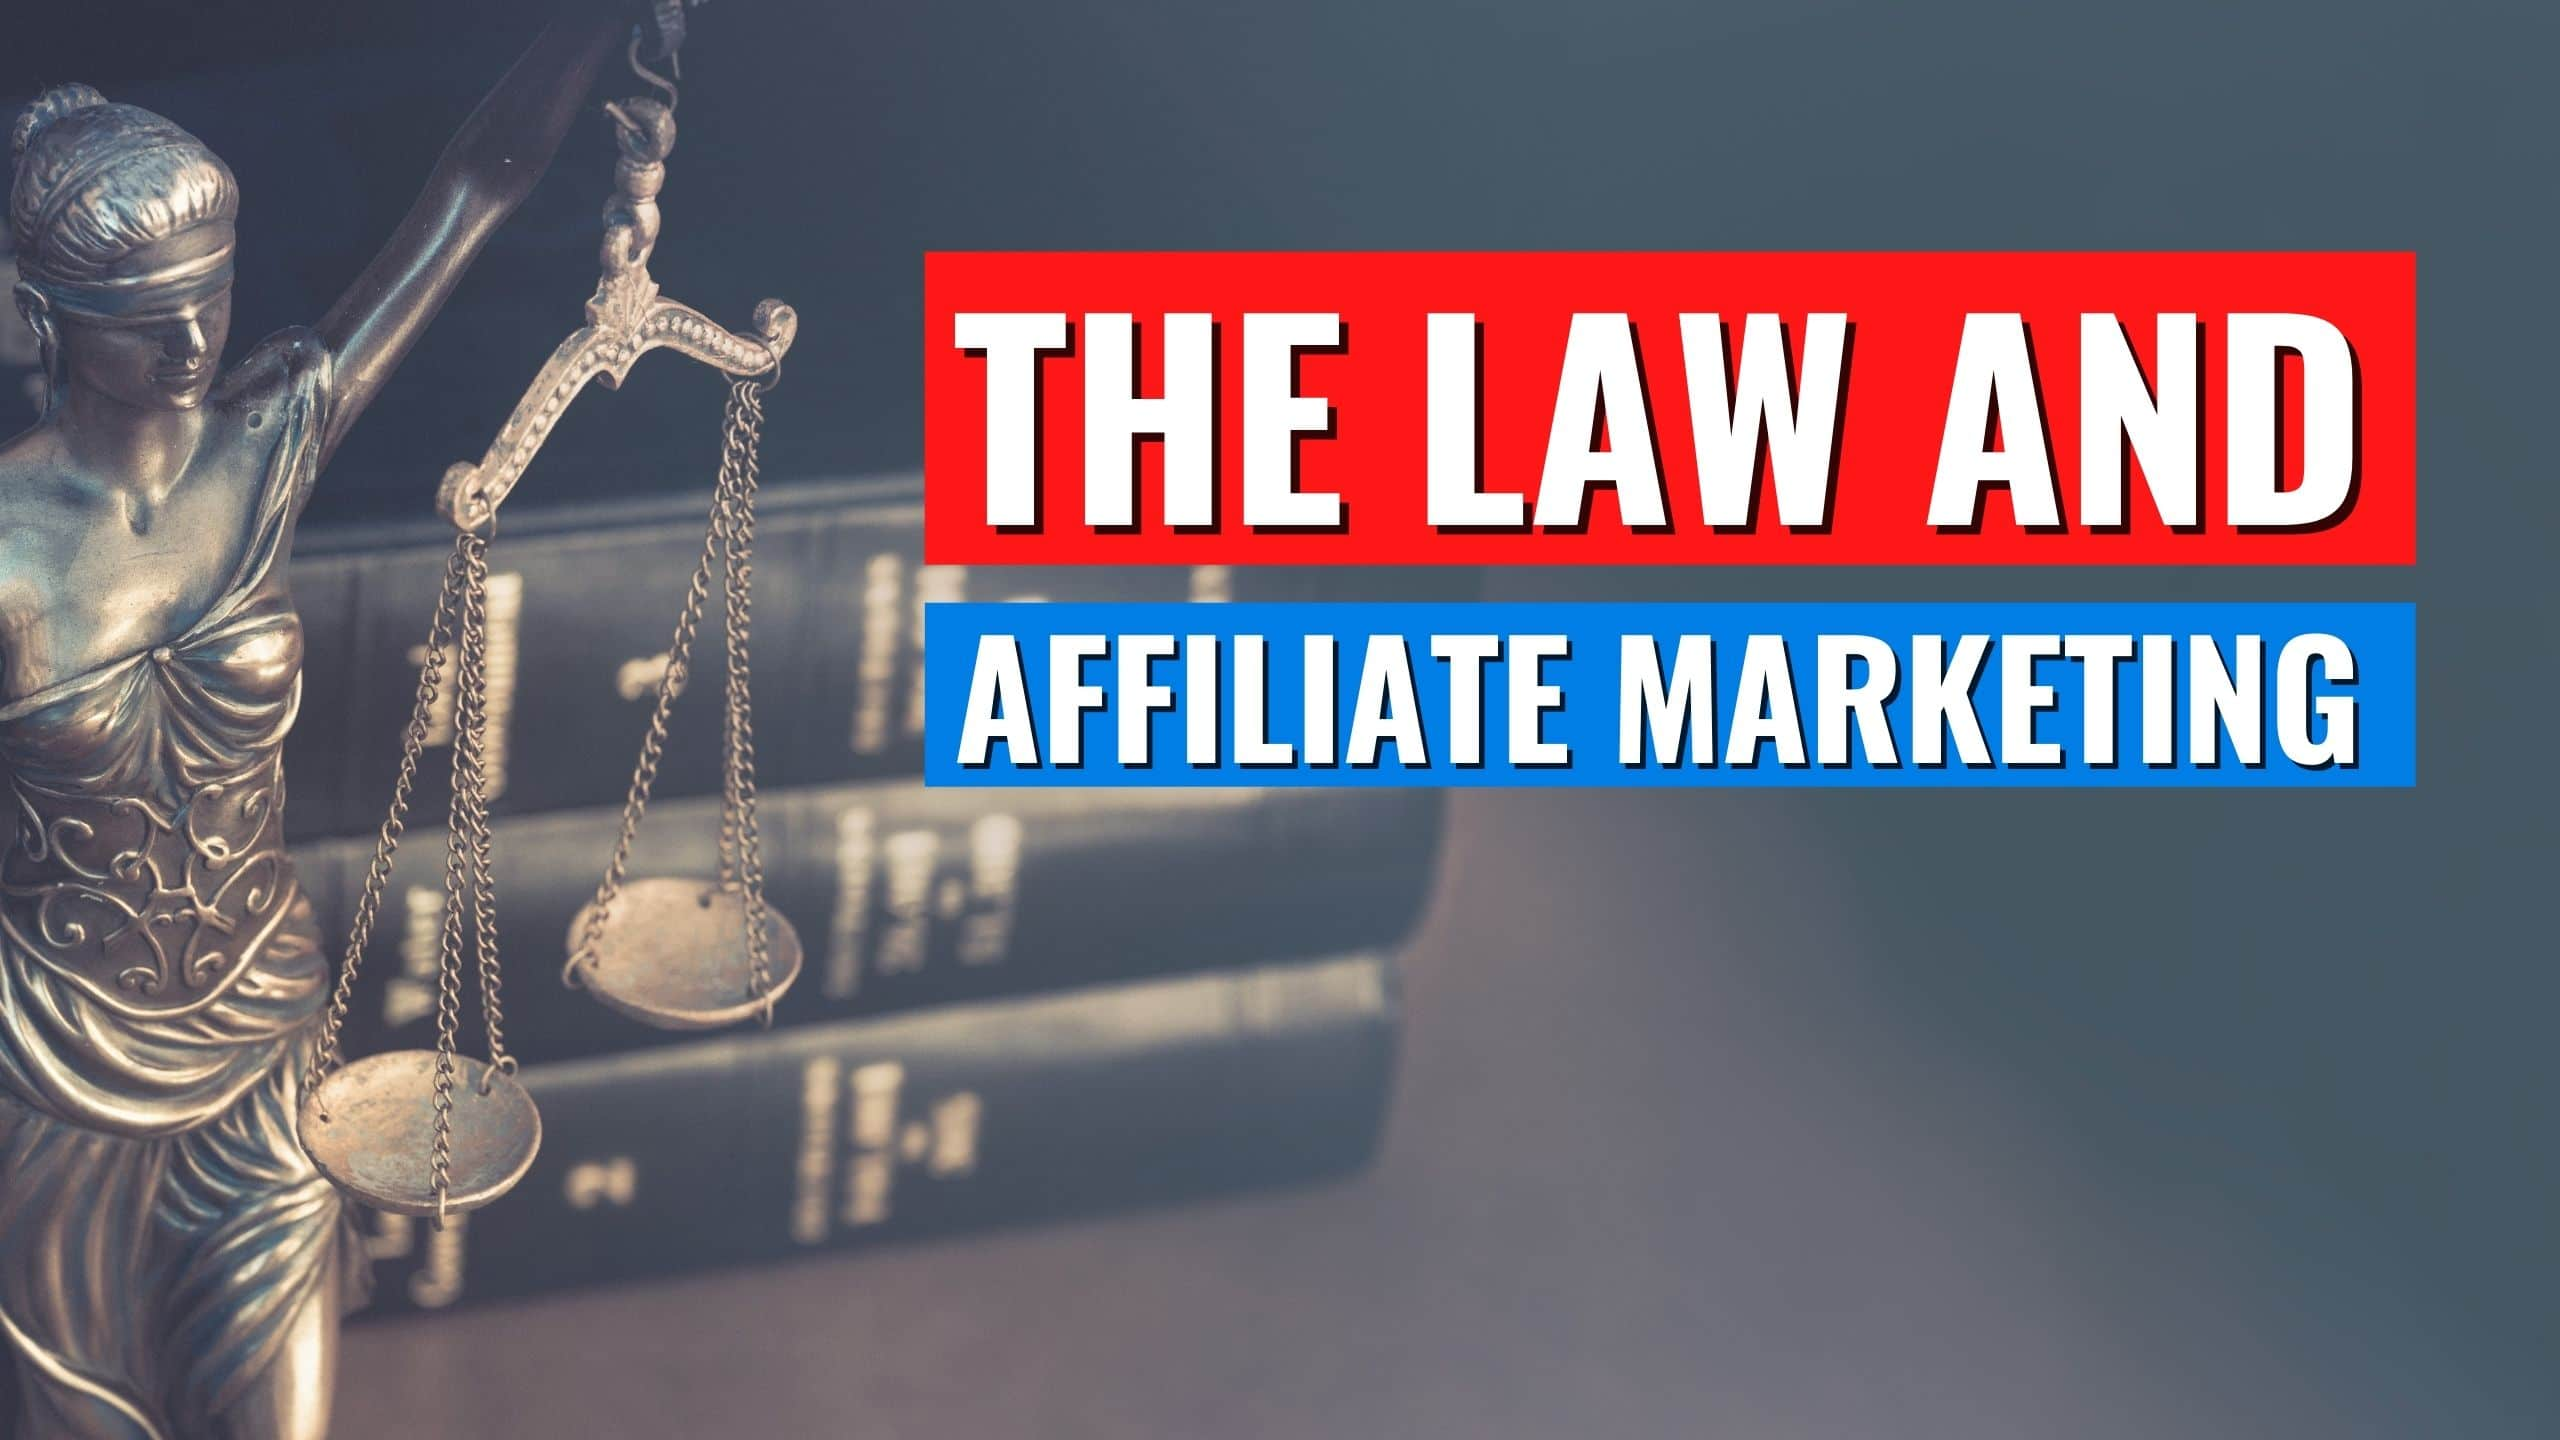 The Law and Affiliate Marketing